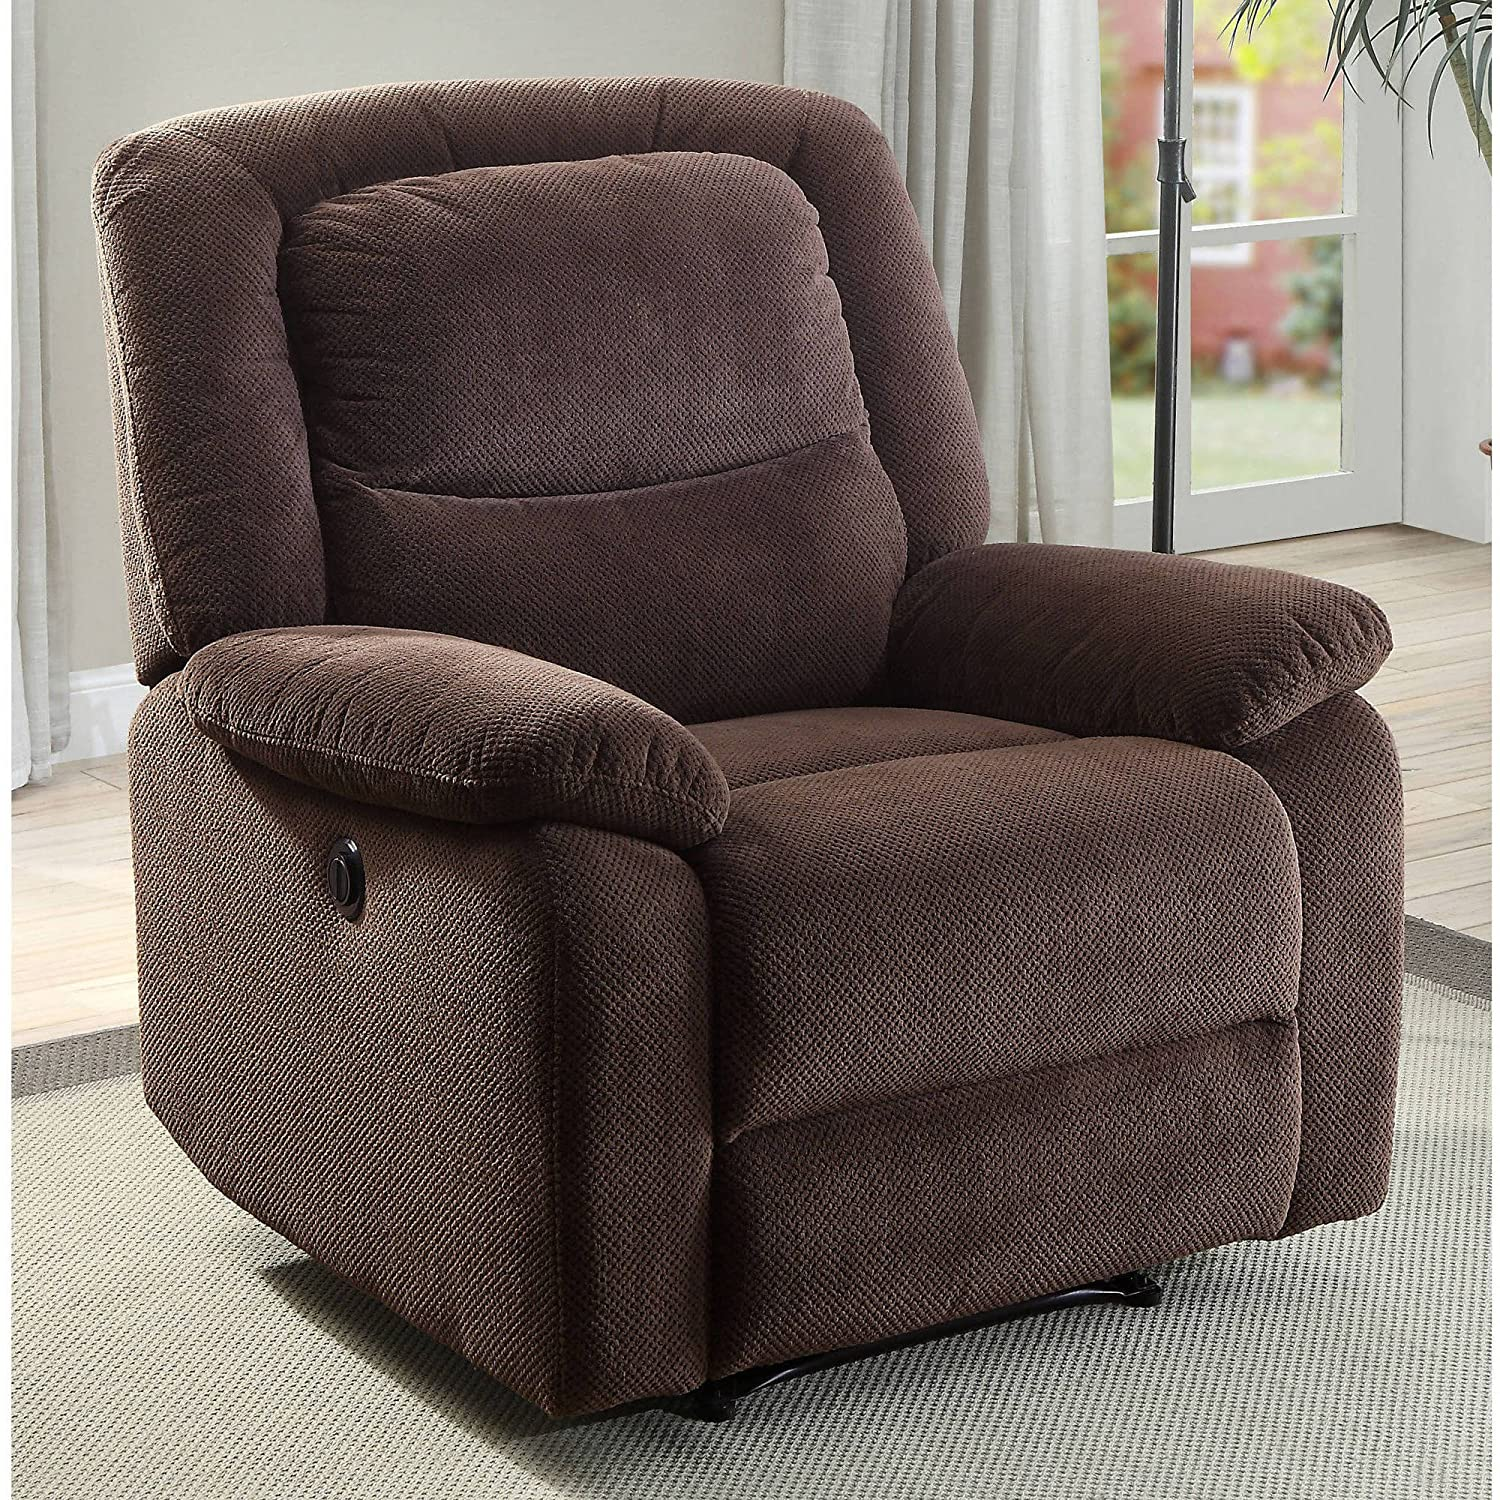 Peachy Best Recliners For Elderly Reviews Top 5 For Seniors In Download Free Architecture Designs Estepponolmadebymaigaardcom